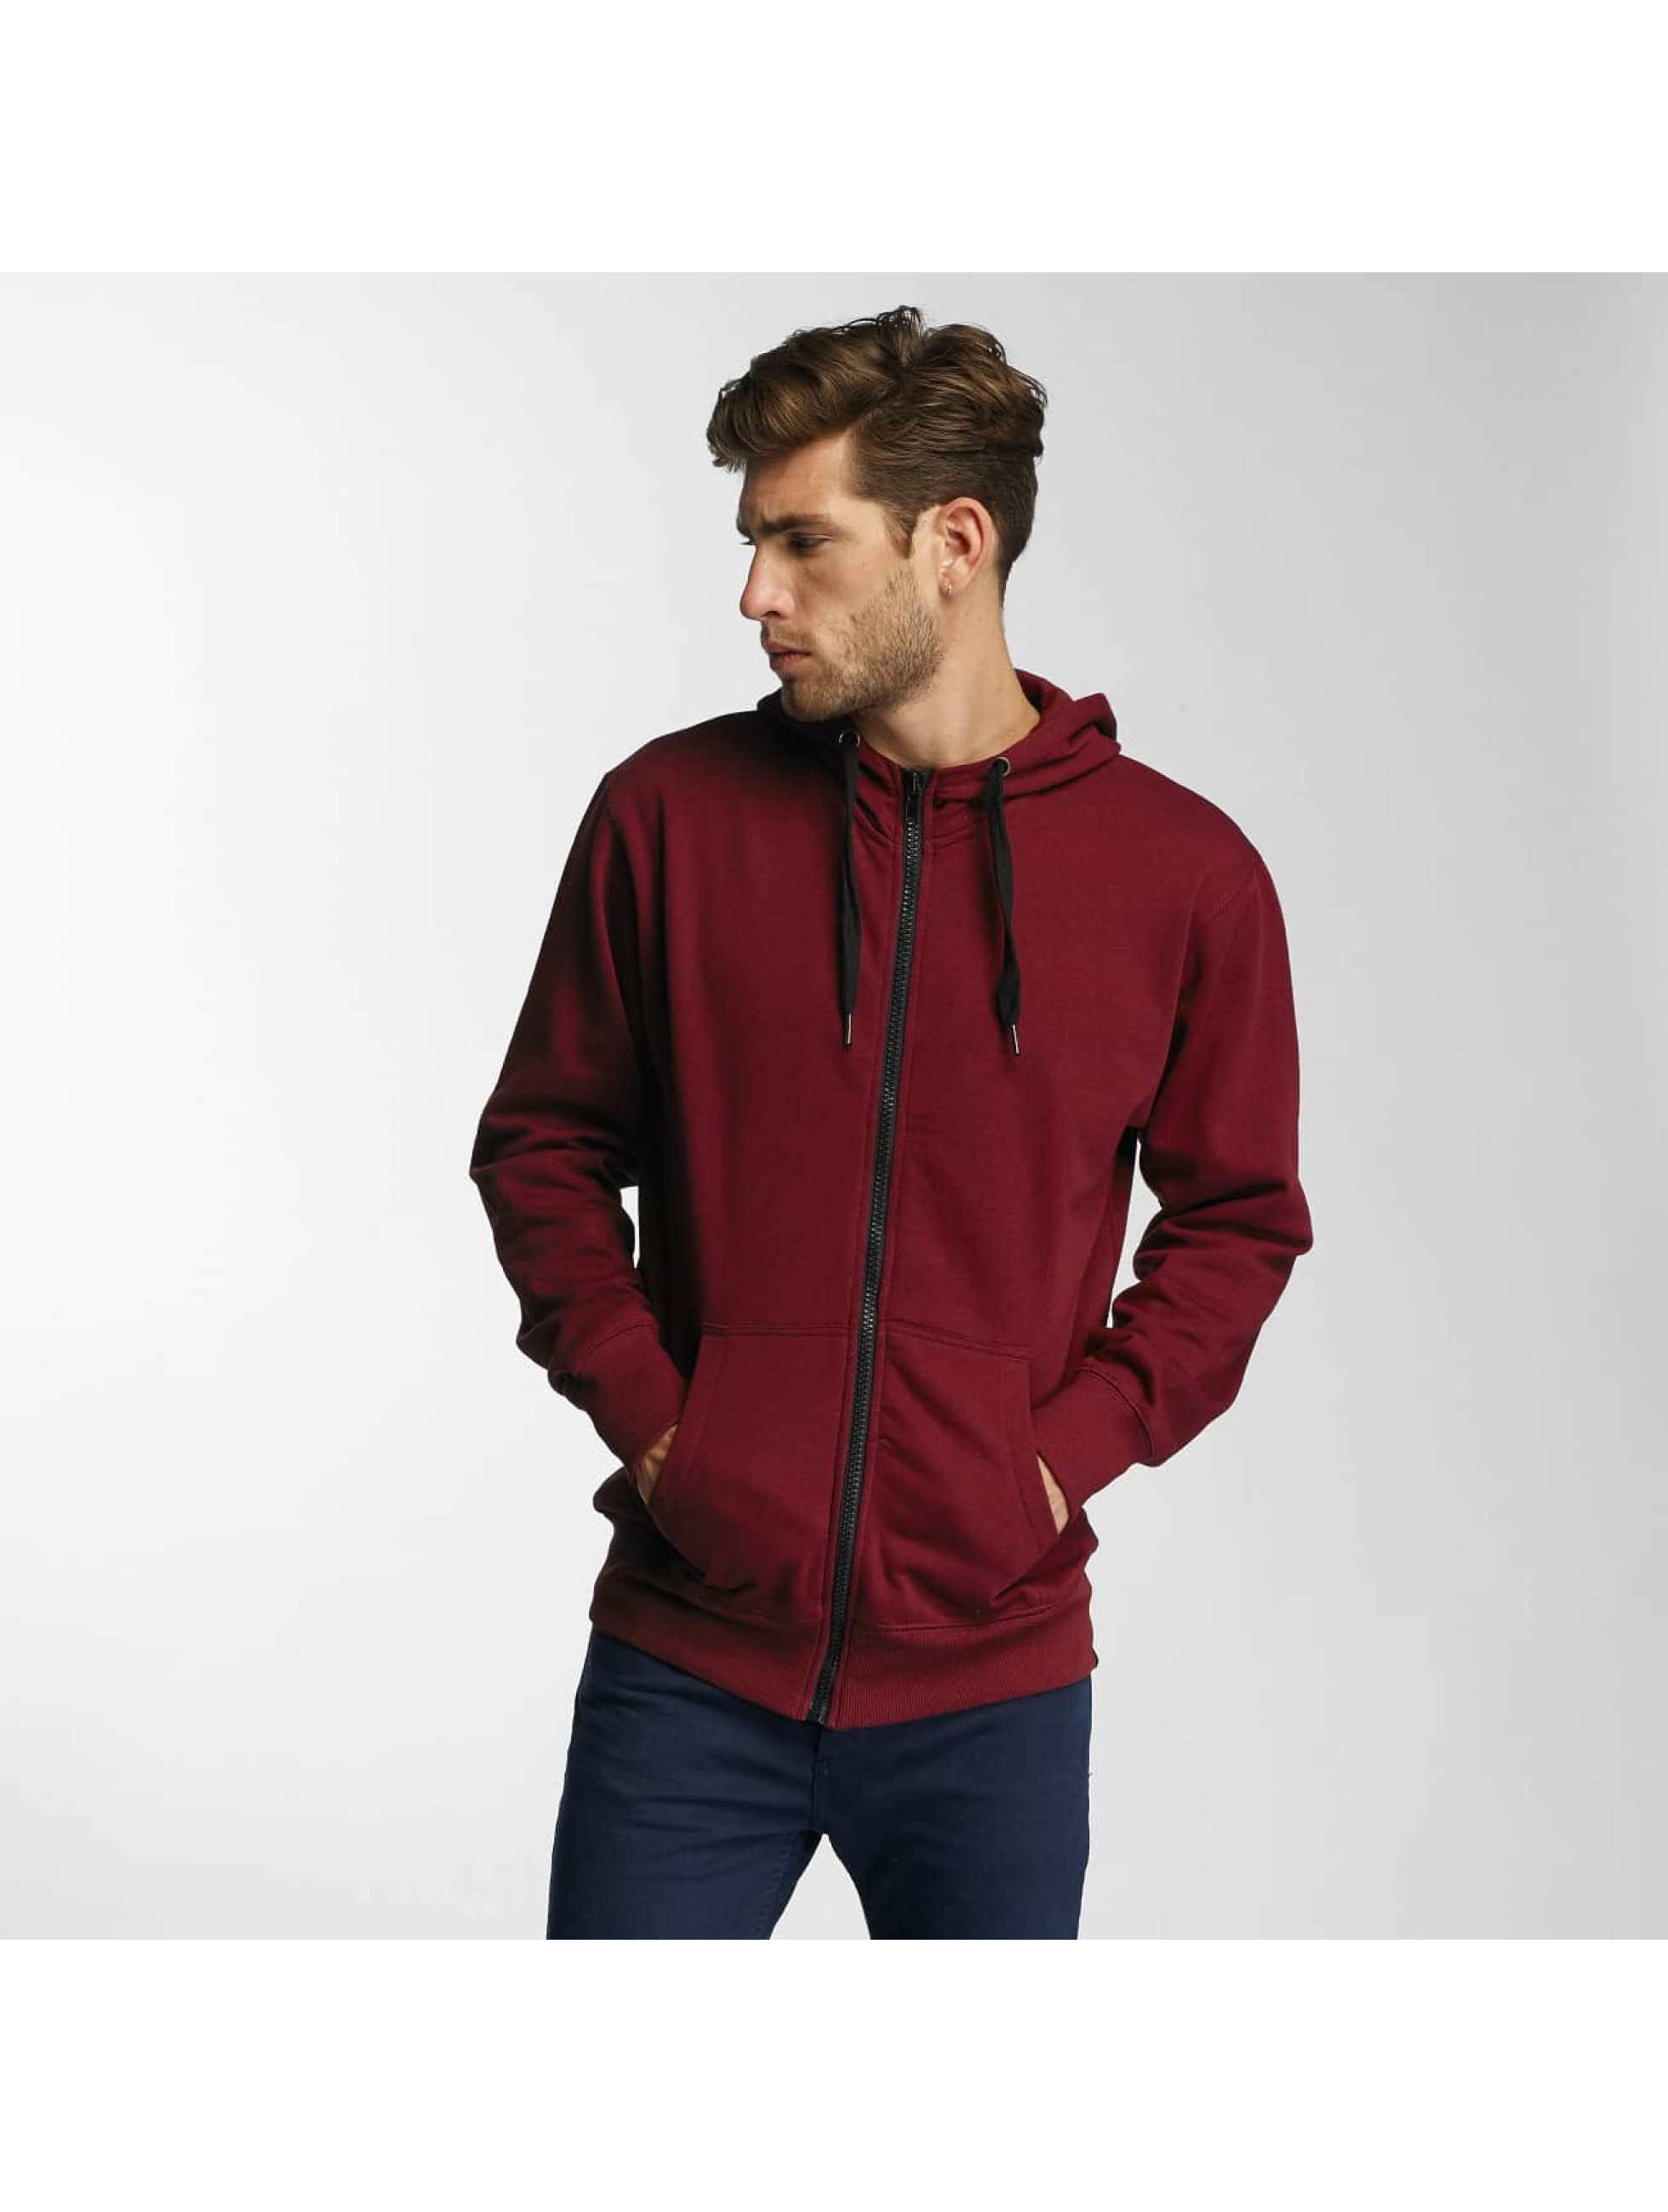 Paris Premium Männer Zip Hoodie Town House in rot